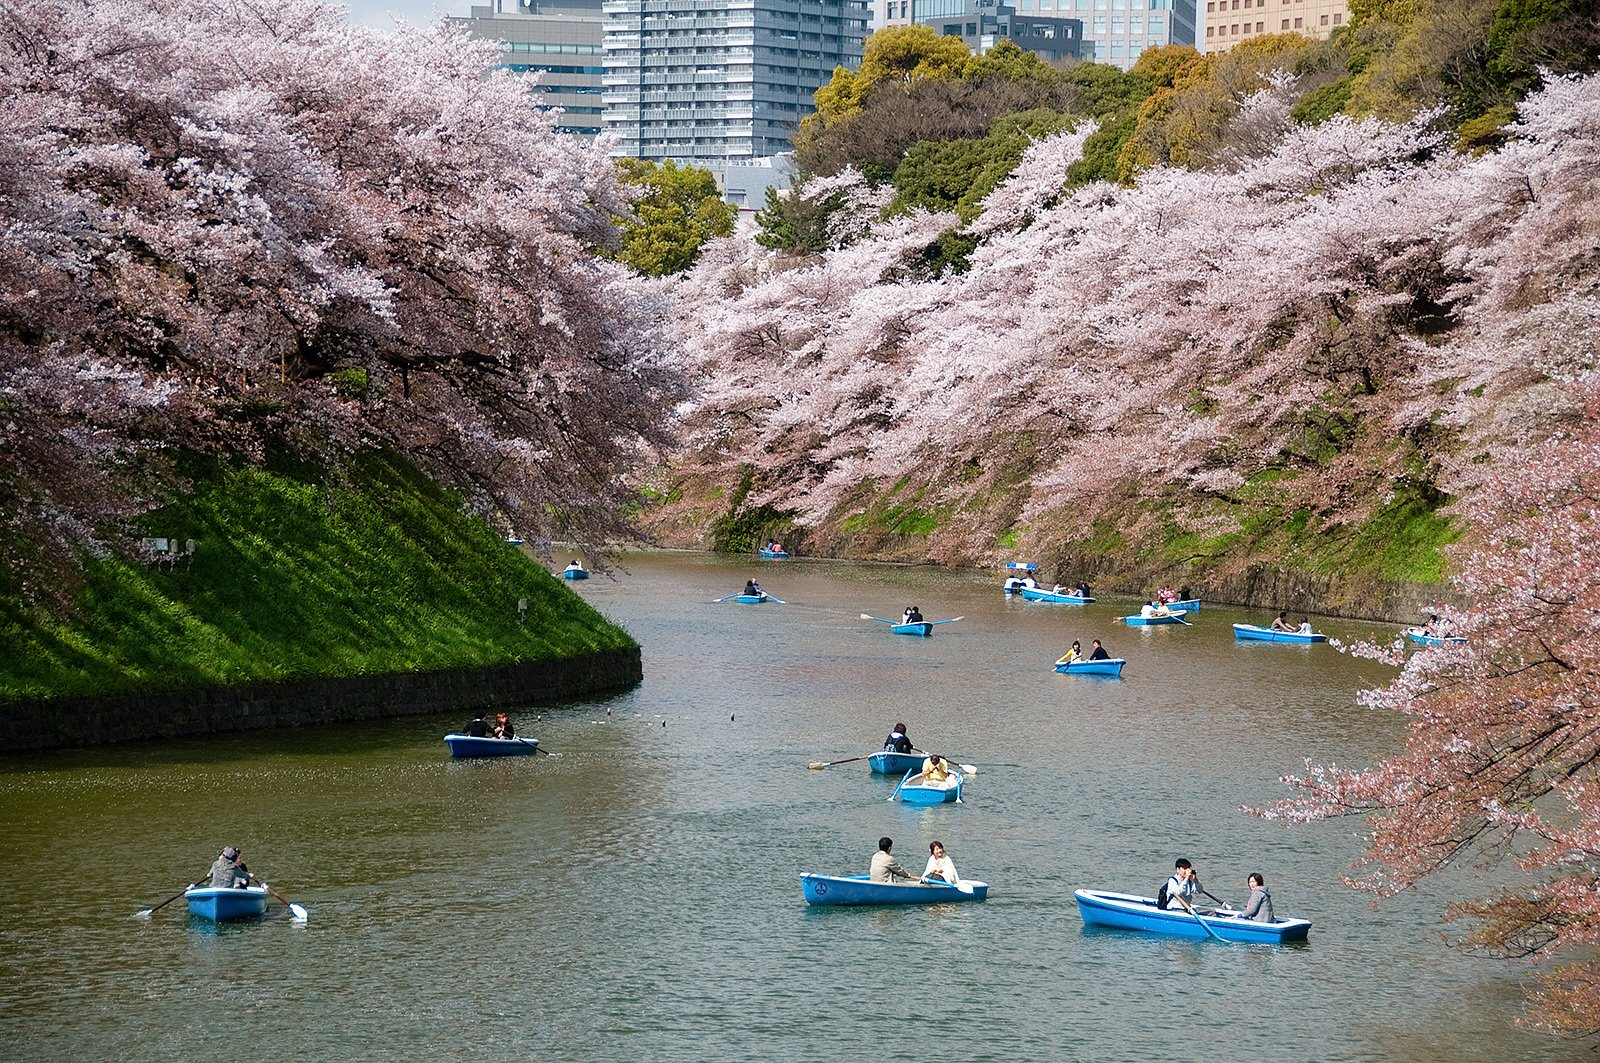 How to take a boat ride among the sakura cherry blossom in Tokyo